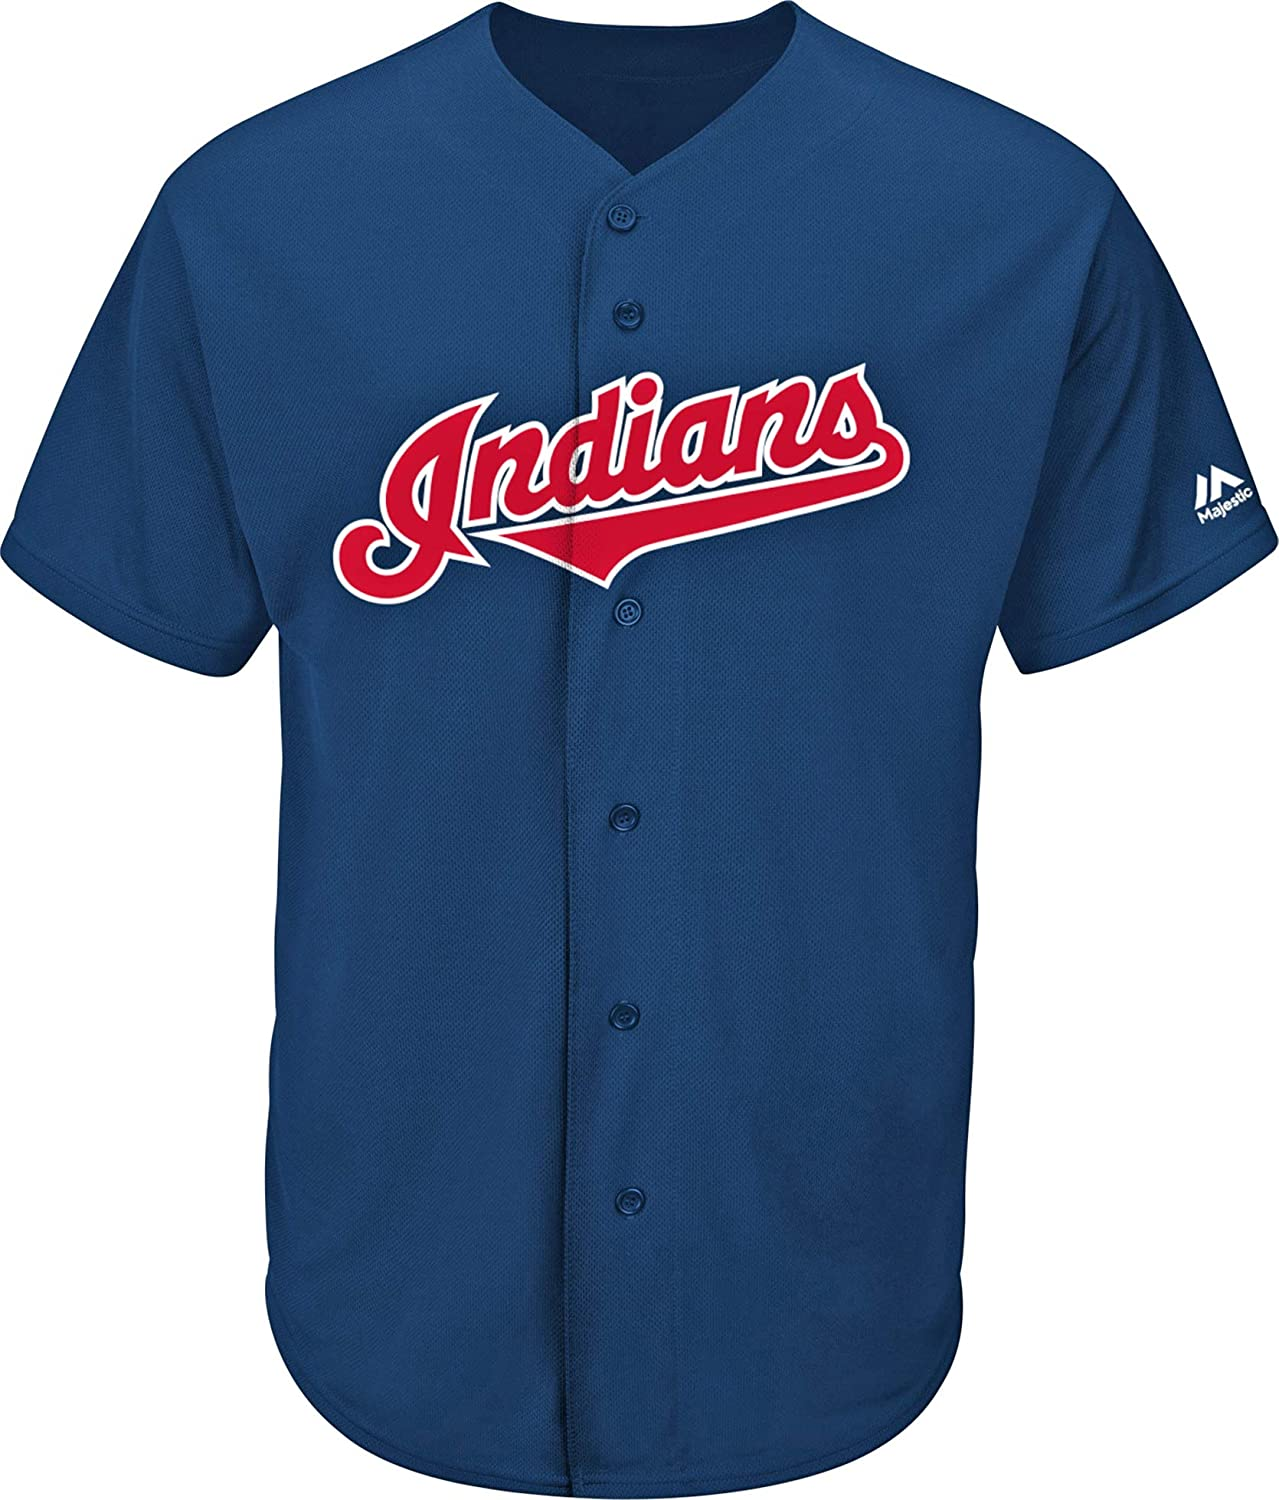 Majestic Athletic Adult Medium Cleveland Indians Blank Back Replica Full-Button Navy Blue